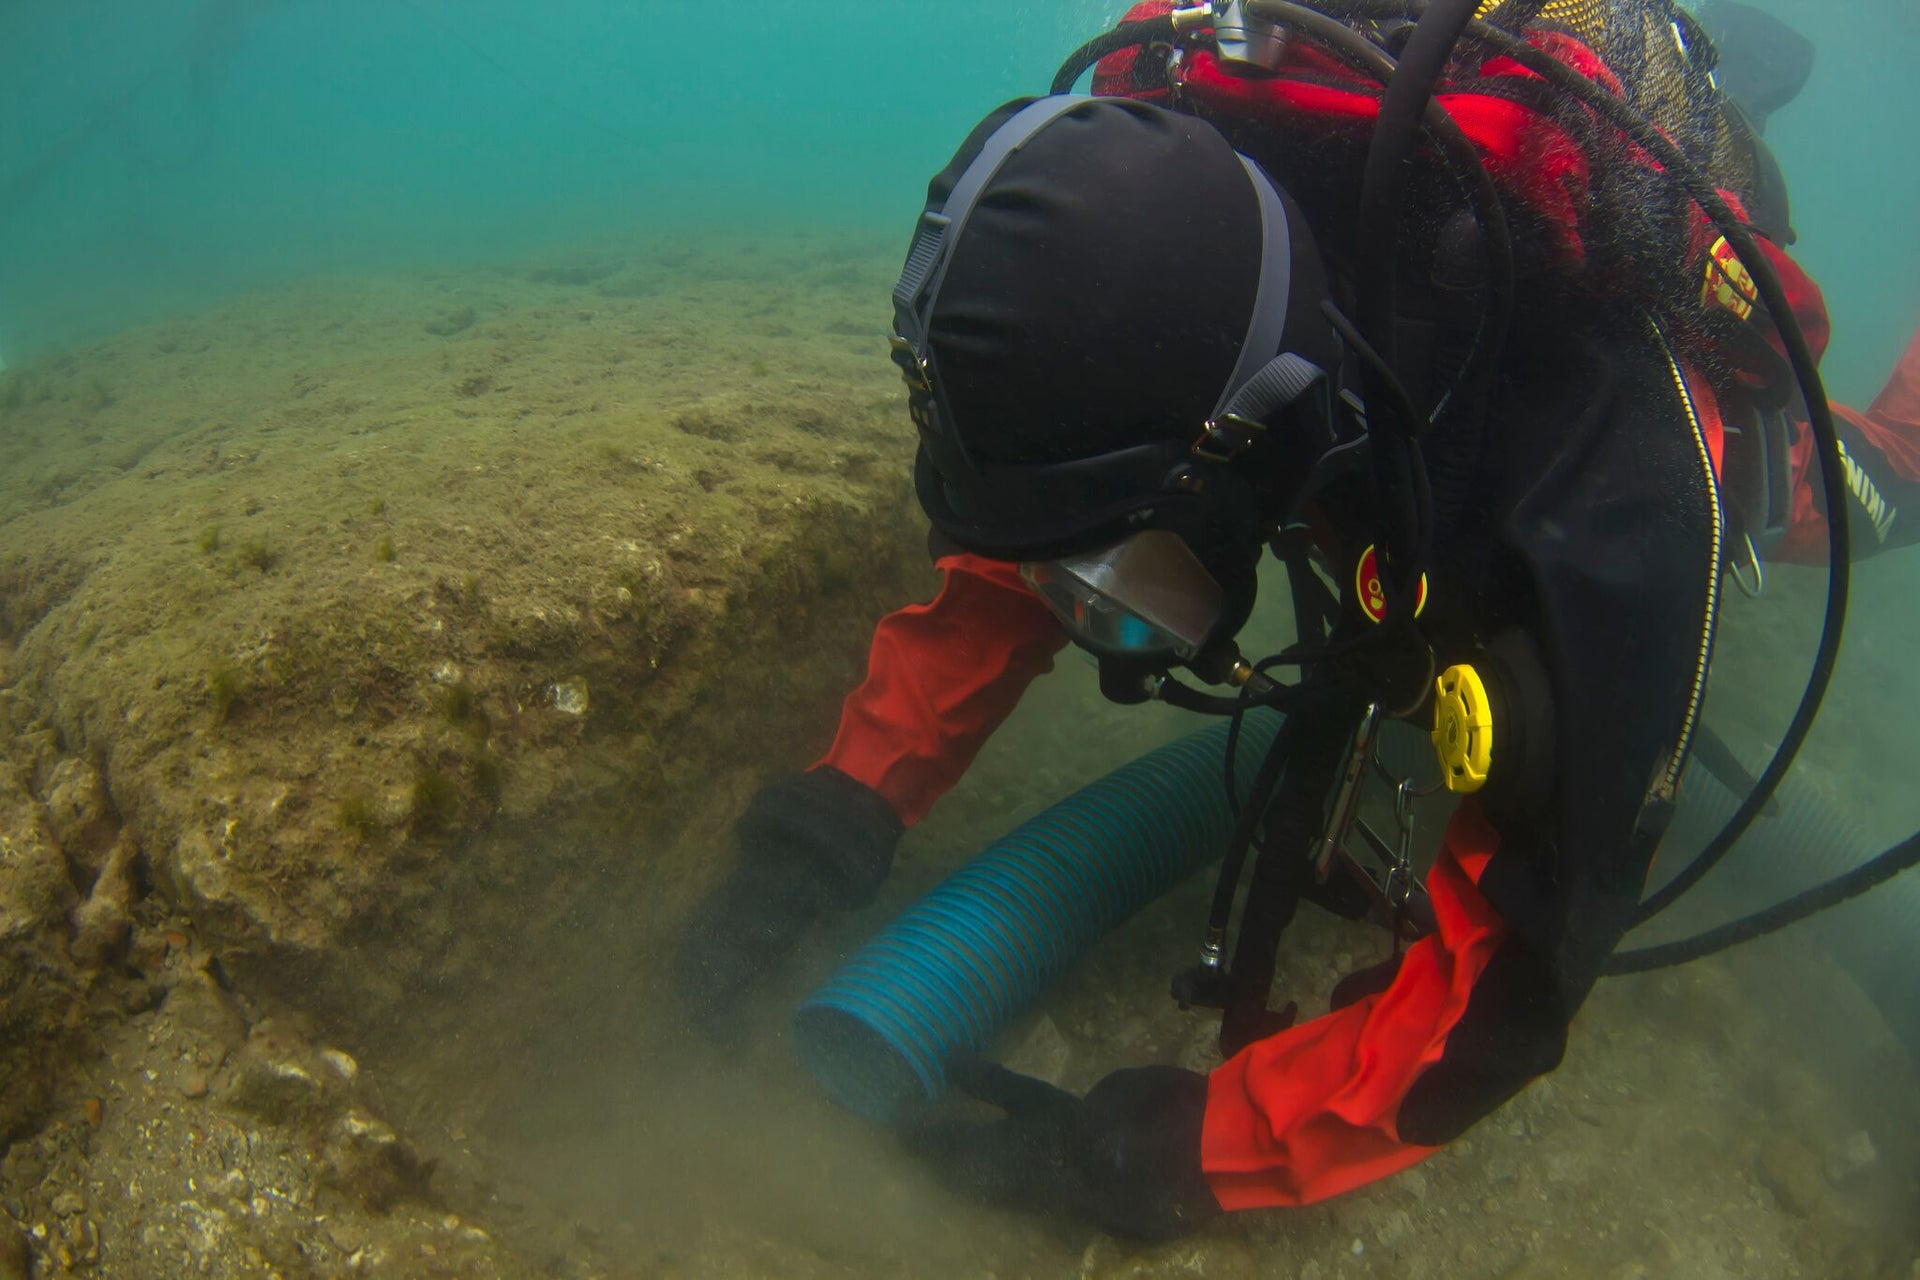 The harbors of the Piraeus are heavily polluted. Archaeologists wore chemical-resistant Viking Pro 1000 dry-suits and Interspiro full-face masks with positive-pressure valves to seal themselves from the contaminated water.